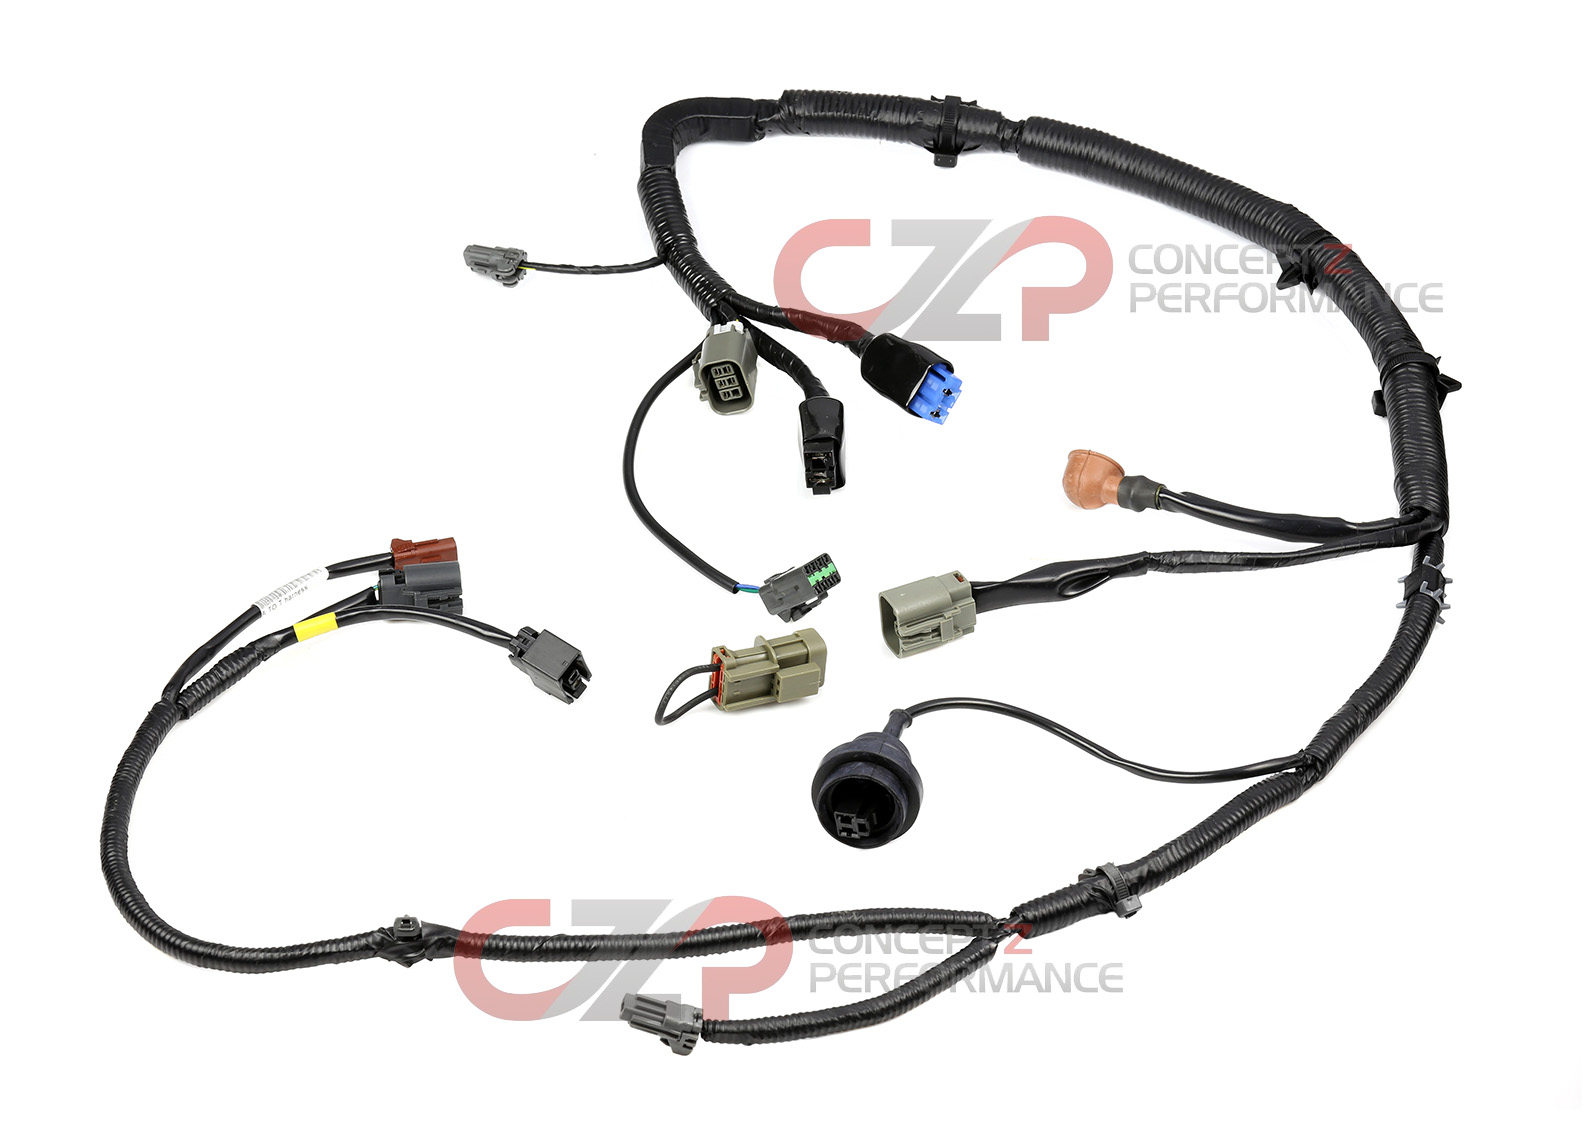 z32 engine electrical wiring harnesses concept z performance 300zx engine harness install 300zx motor wiring harness #44